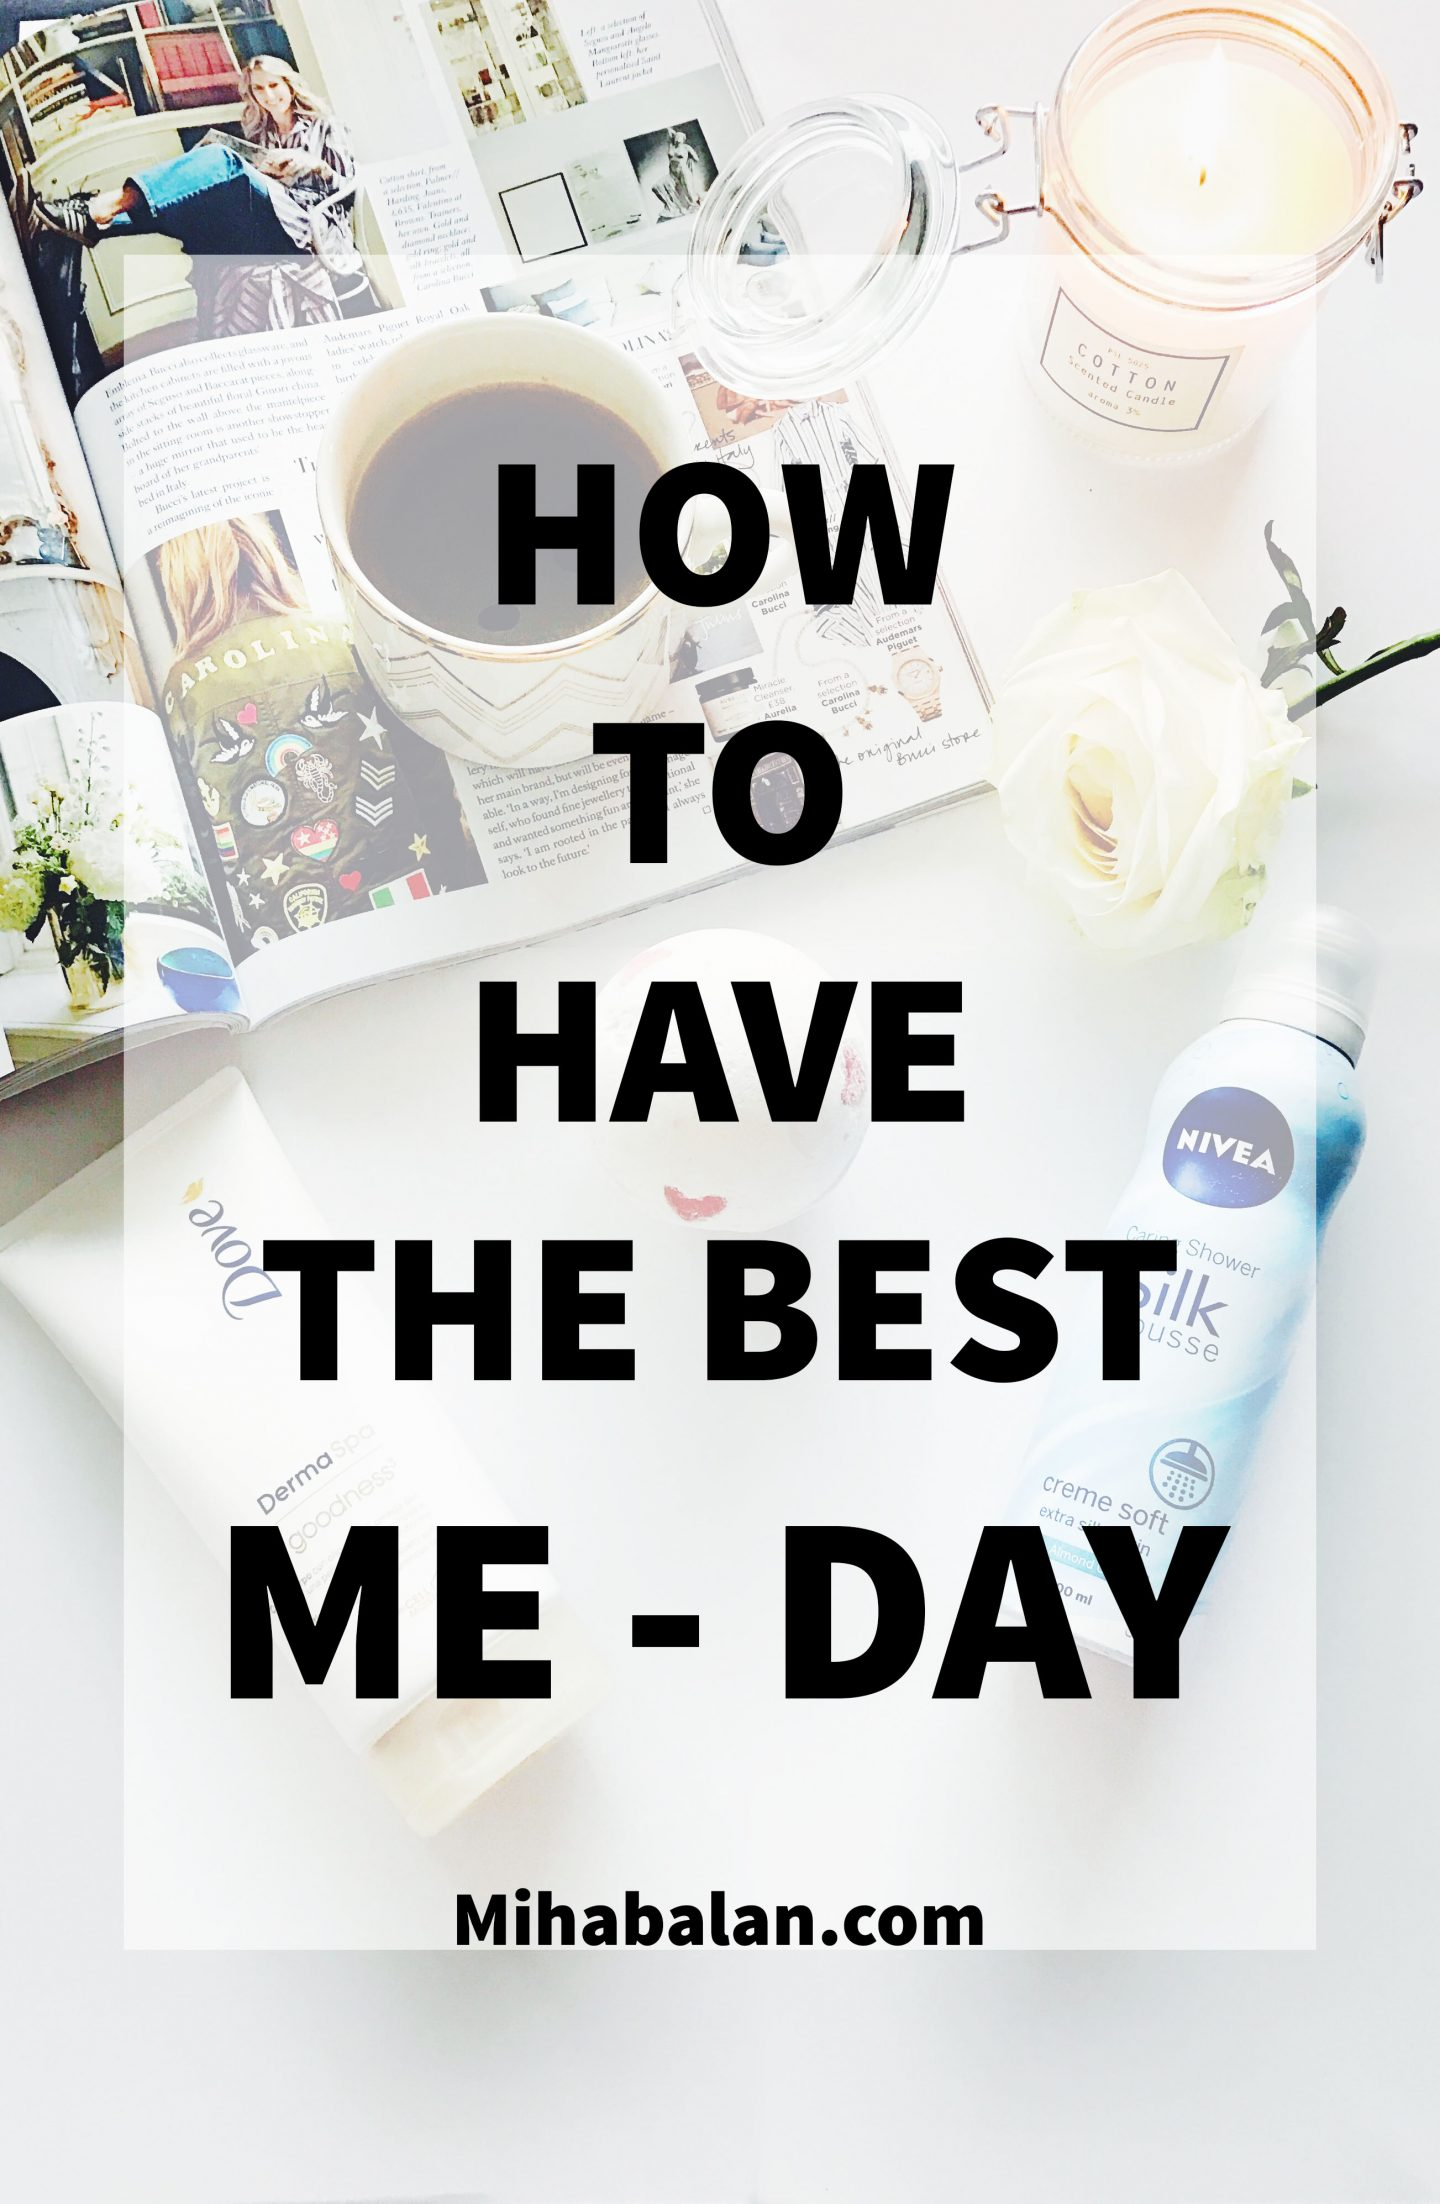 How to have the best Me-day